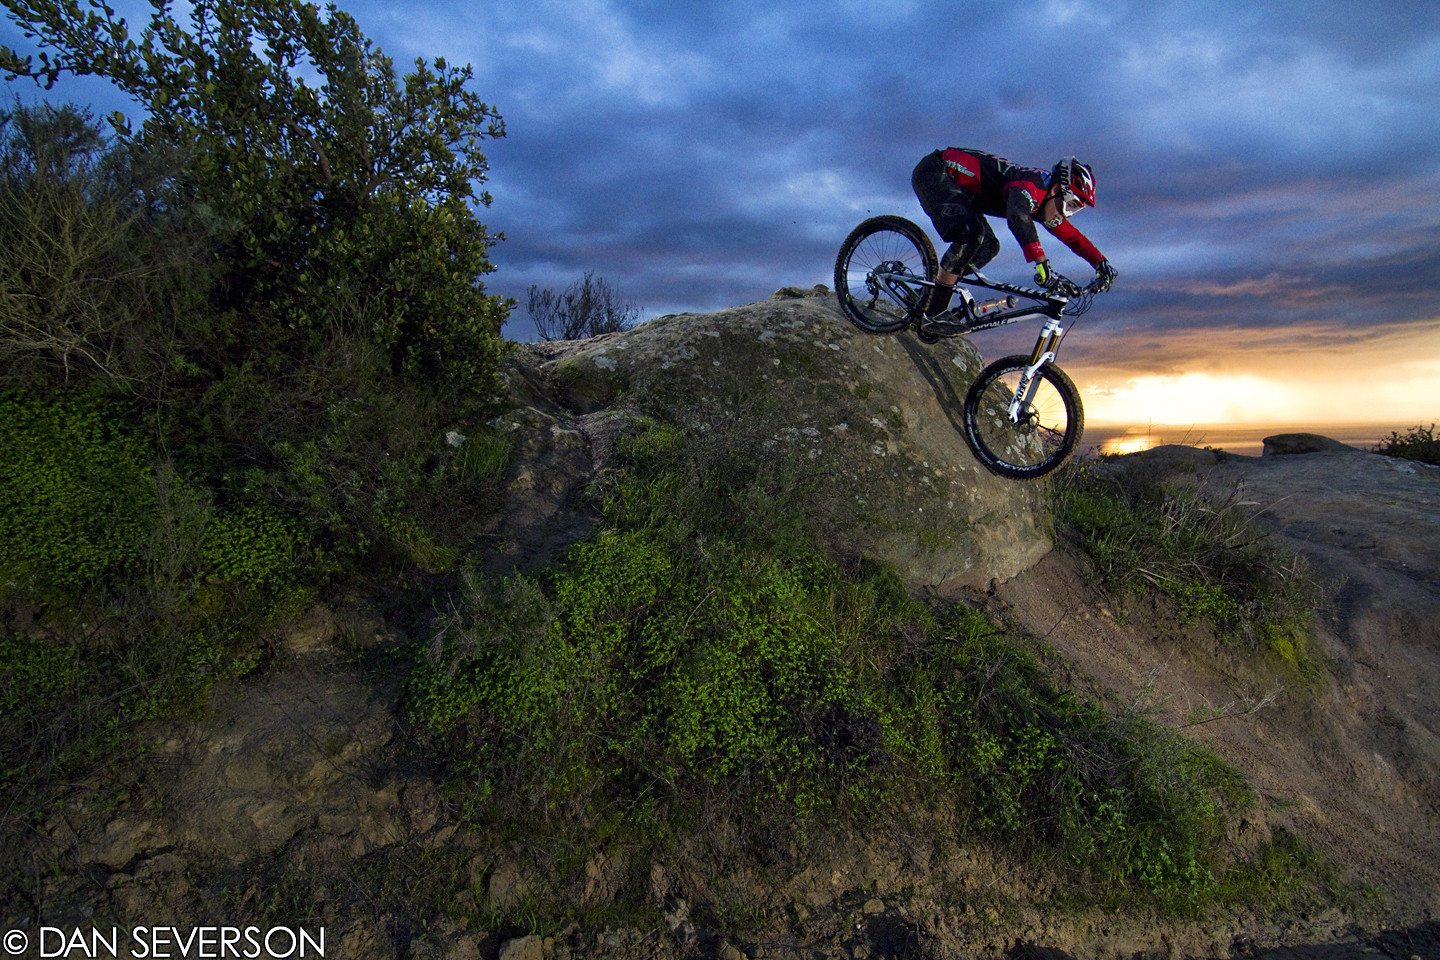 Jon Buckell - danseverson photo - Mountain Biking Pictures - Vital MTB